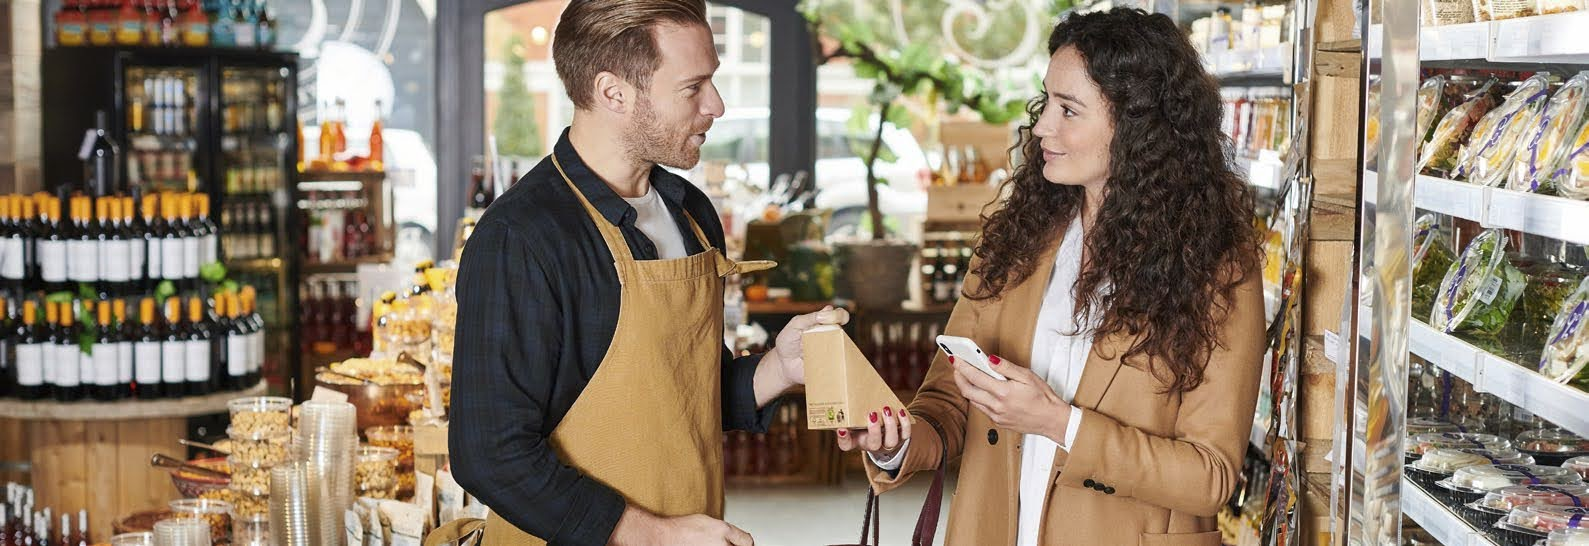 RFID provides solutions for omnichannel grocery to achieve a frictionless grocery experience